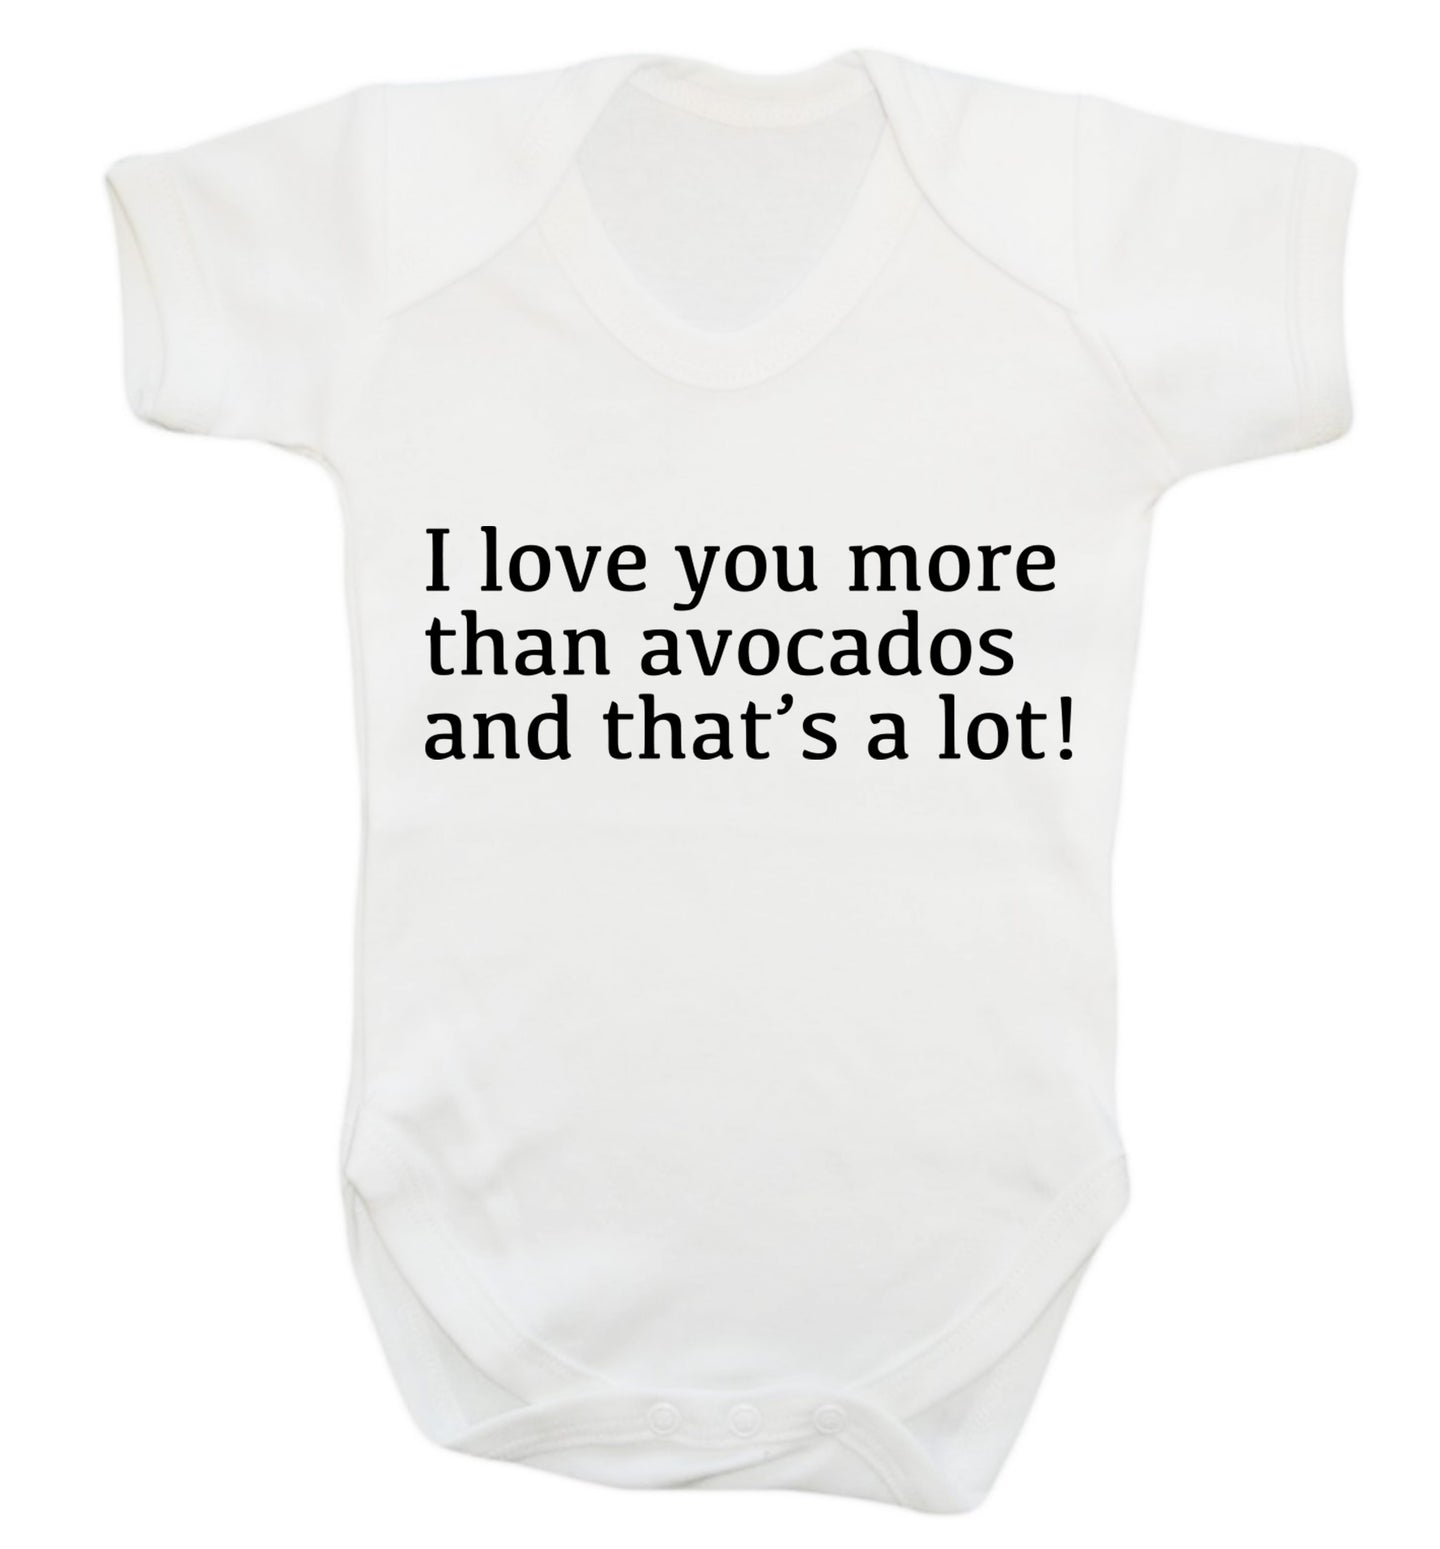 I love you more than avocados and that's a lot Baby Vest white 18-24 months